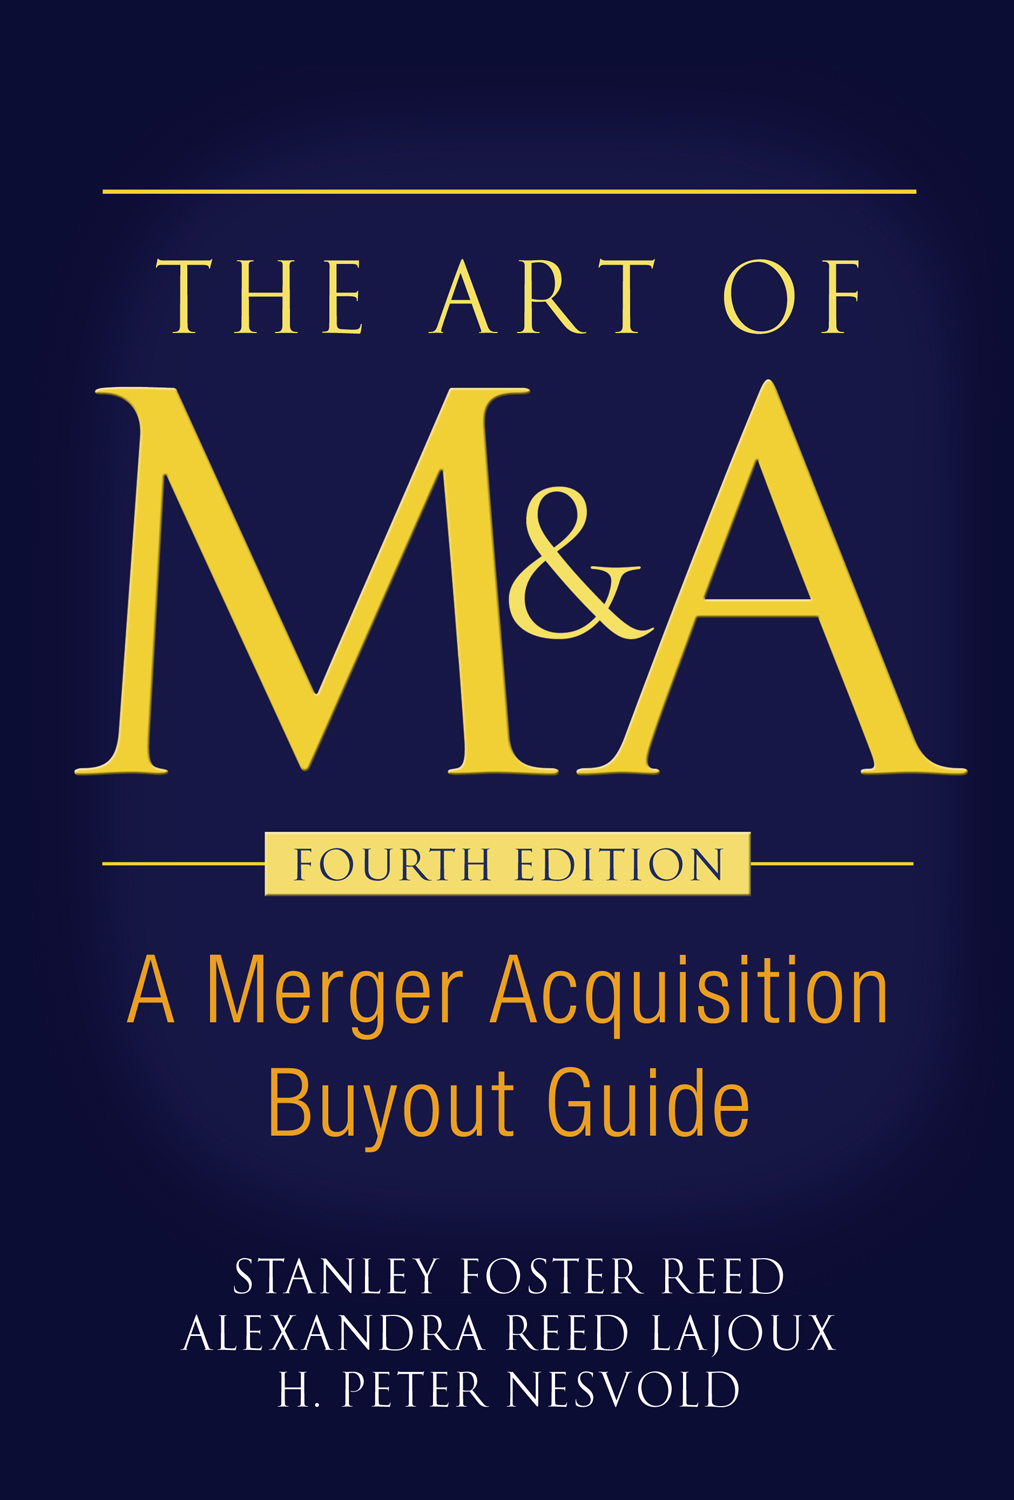 Download Ebook The Art of M&A, Fourth Edition (4th ed.) by Stanley Foster Reed Pdf